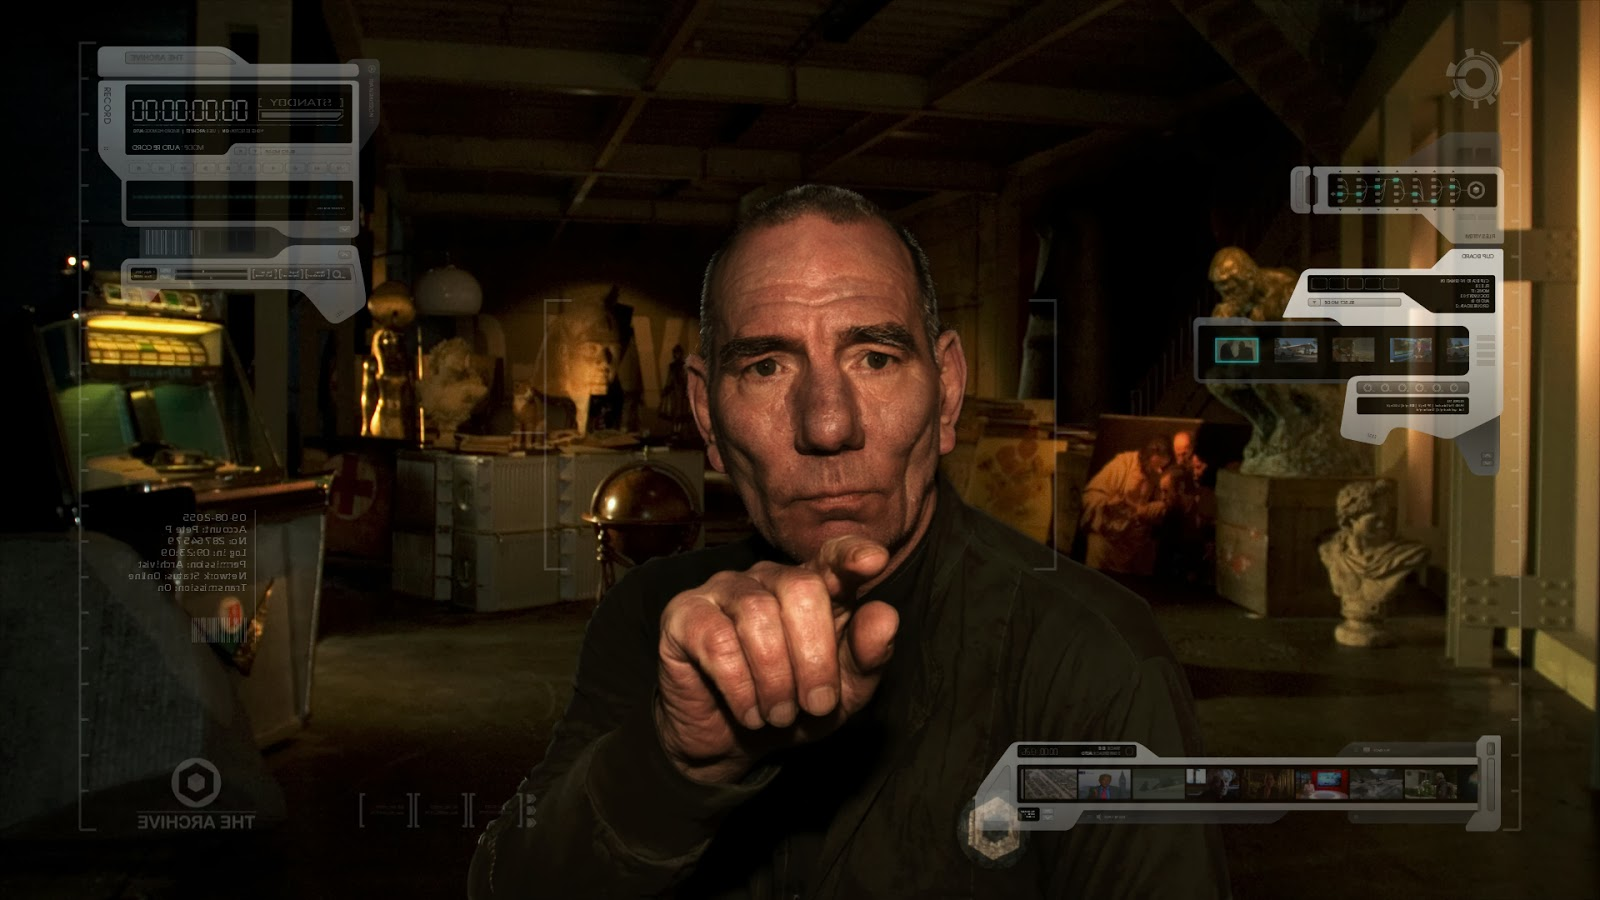 Peter Postlethwaite in 'The Age of Stupid'